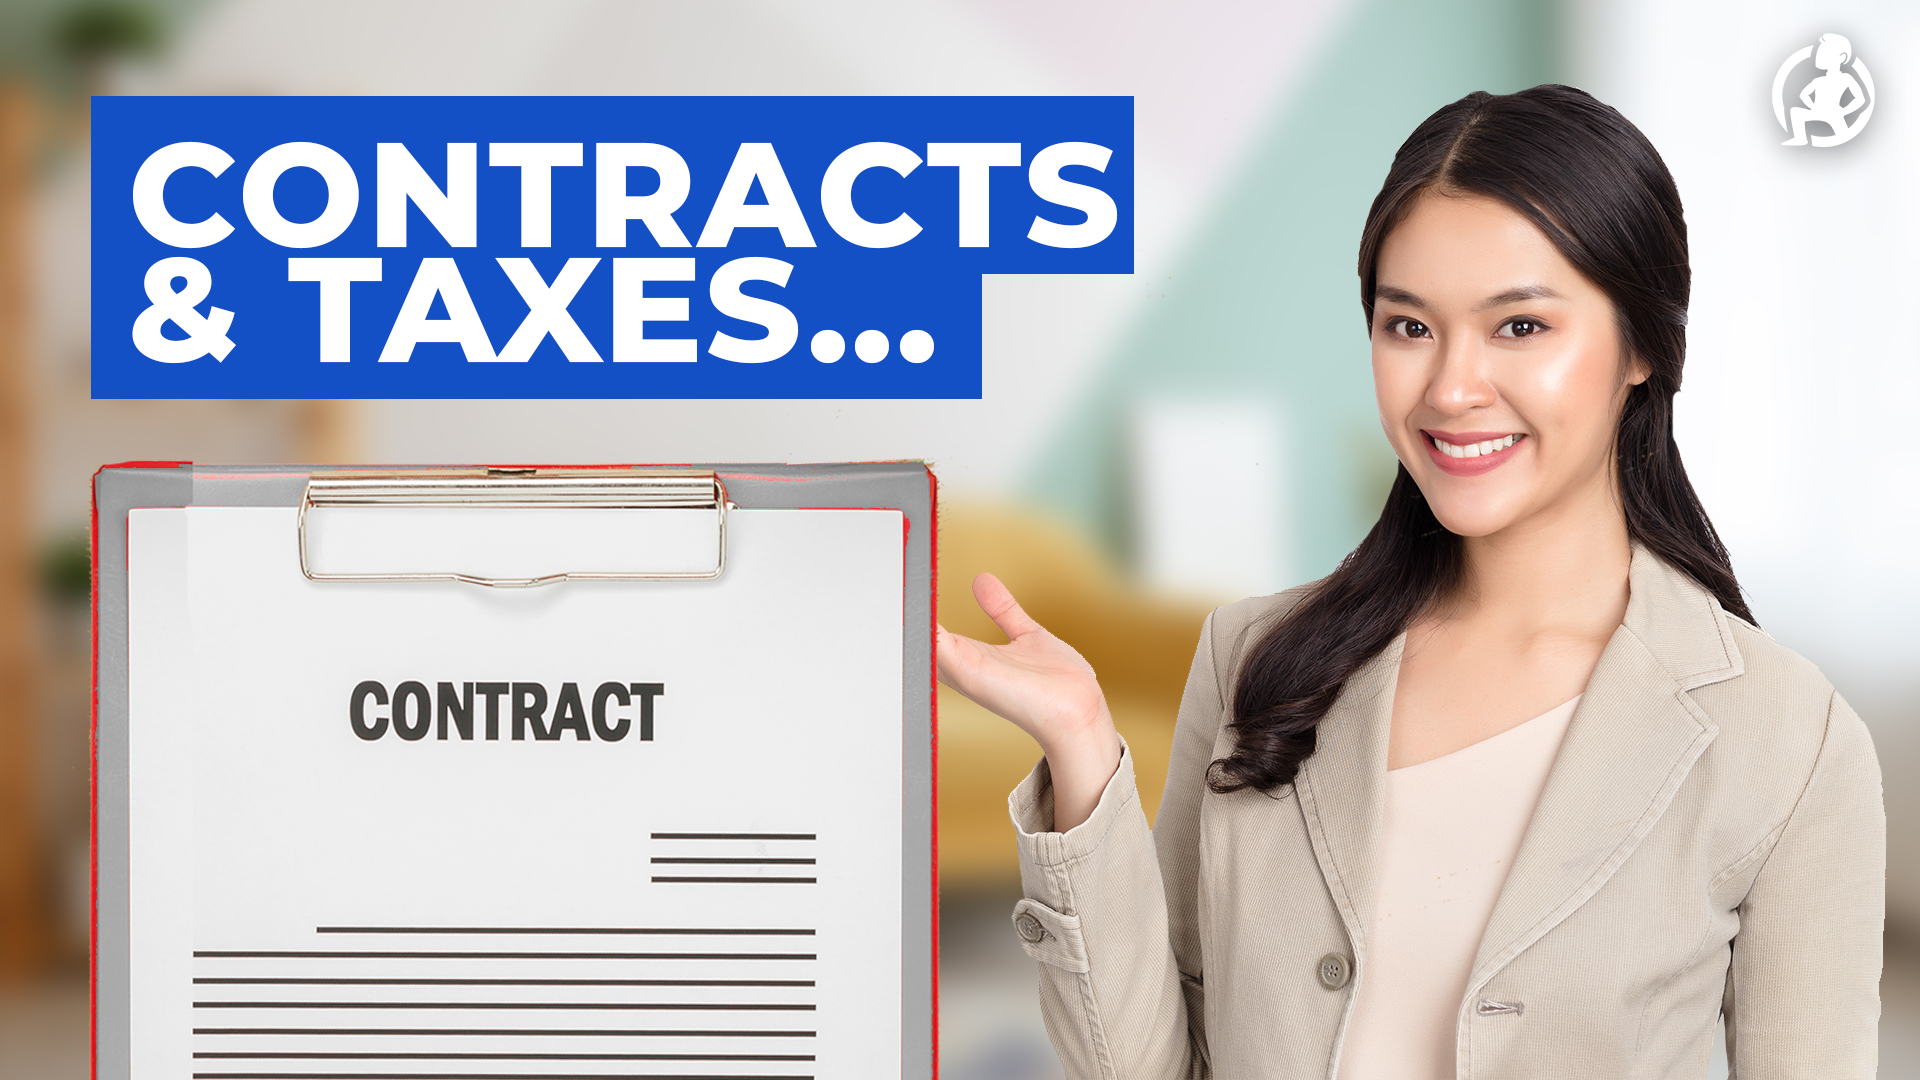 Contracts & Taxes Thumbnail